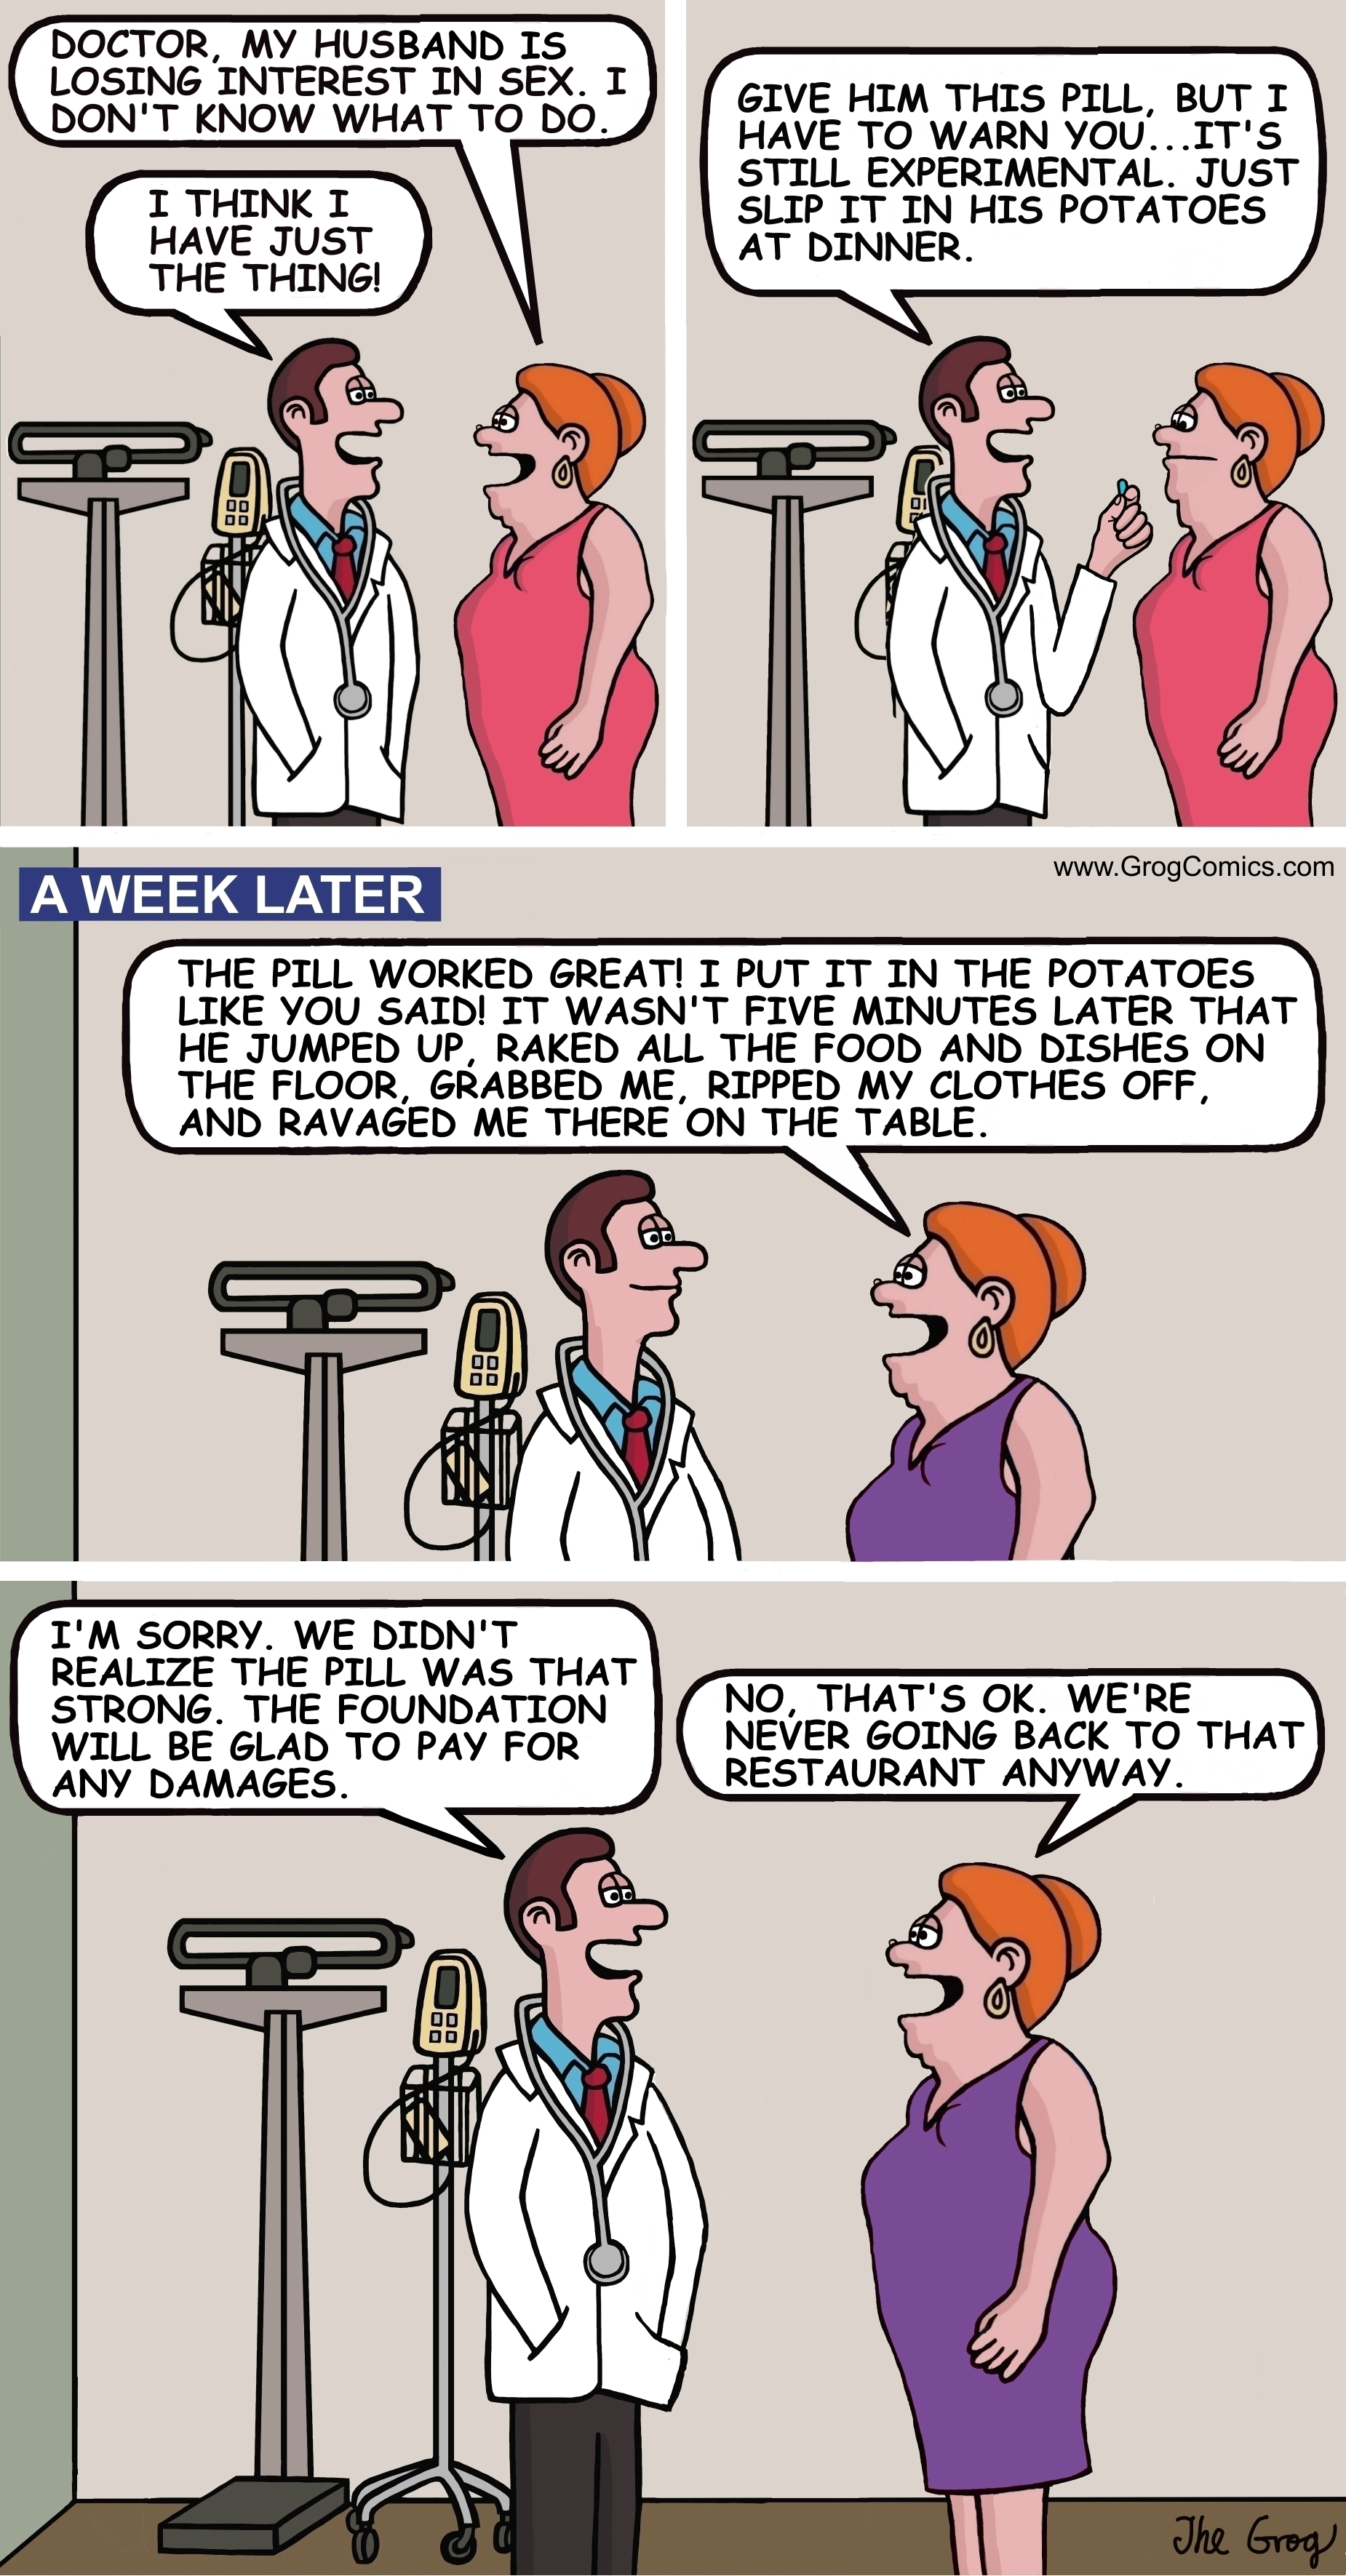 """A woman goes to the doctor and complains to him about her sex life. """"Doctor, my husband is losing interest in sex. I don't know what to do"""", says the concerned wife. The doctor says, """"I think I have just the thing."""" He holds out his hand and says, """"Give him this pill, but I have to warn you...it's still experimental. Just put it in his potatoes at dinner."""" The woman leaves the doctor's office. A week later, the woman returns to the same doctor and says, """"Doctor, the pill worked great. I put it in the potatoes like you said! It wasn't five minutes later that he jumped up, raked all the food and dishes on the floor, grabbed me, ripped my clothes off, and ravaged me there on the table."""" The doctor says, """"I'm sorry. We didn't realize the pill was that strong. The foundation will be glad to pay for any damages."""" """"No, that's OK"""", says the woman. """"We're never going back to that restaurant anyway."""""""